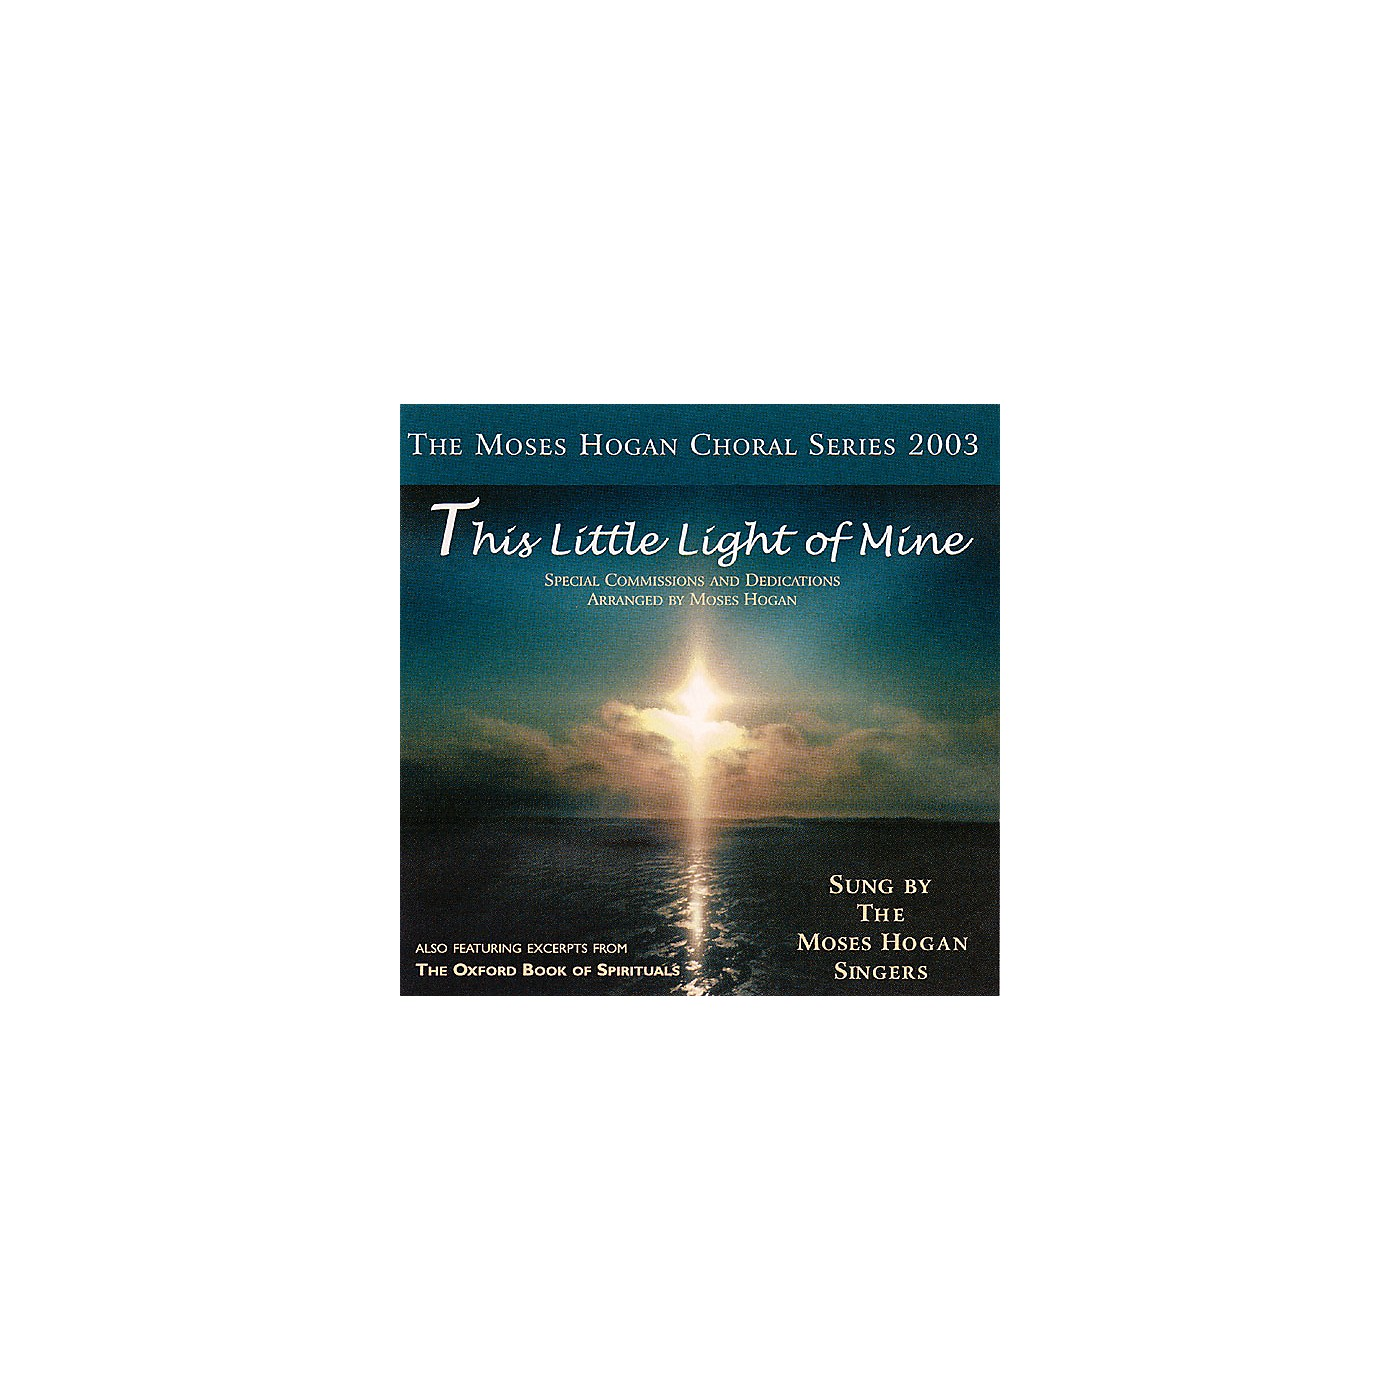 Hal Leonard This Little Light of Mine (Special Commissions and Dedications) thumbnail